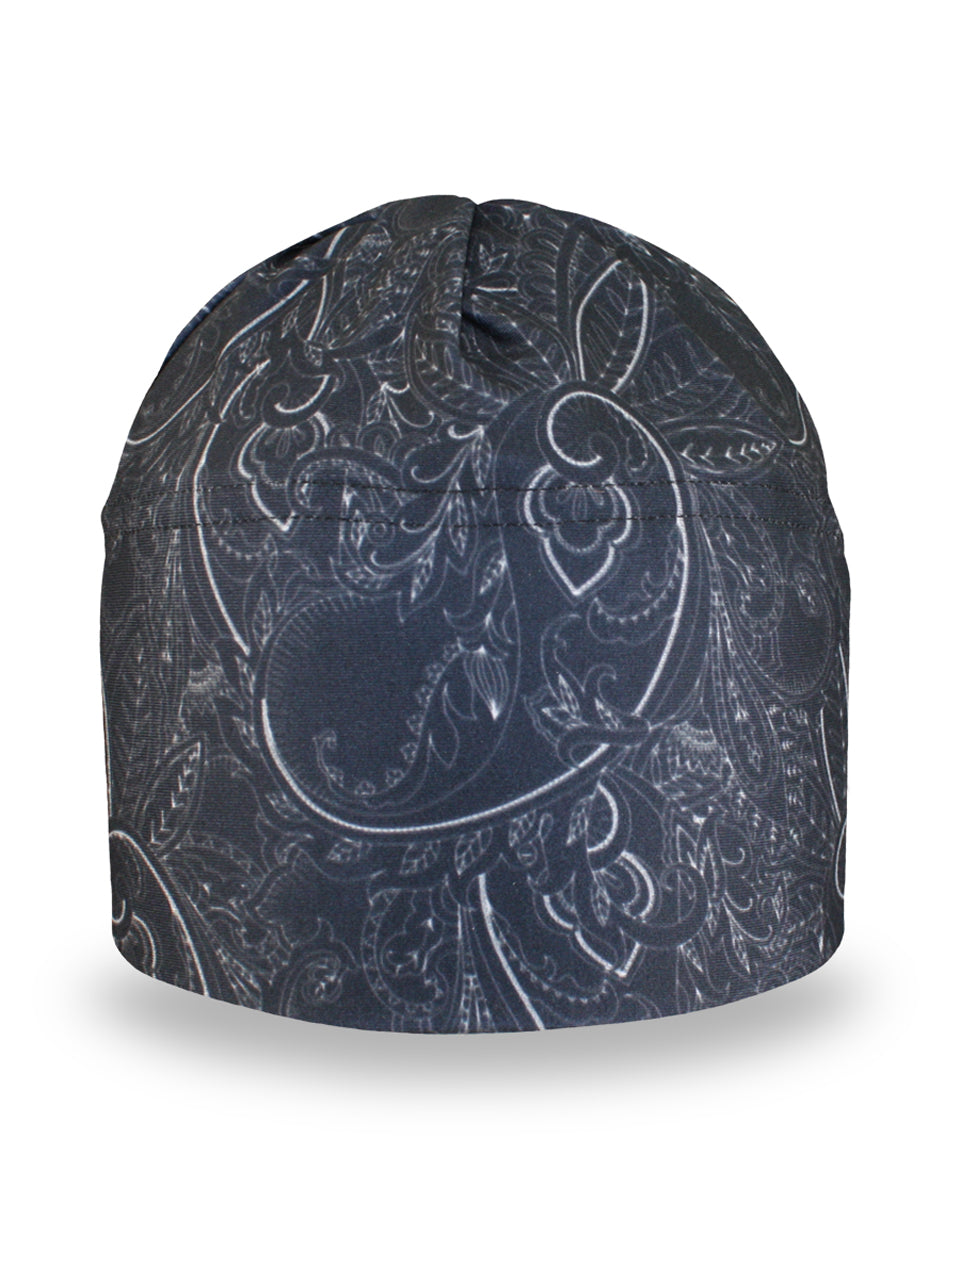 Fleece lined winter hat with a black and white paisley pattern